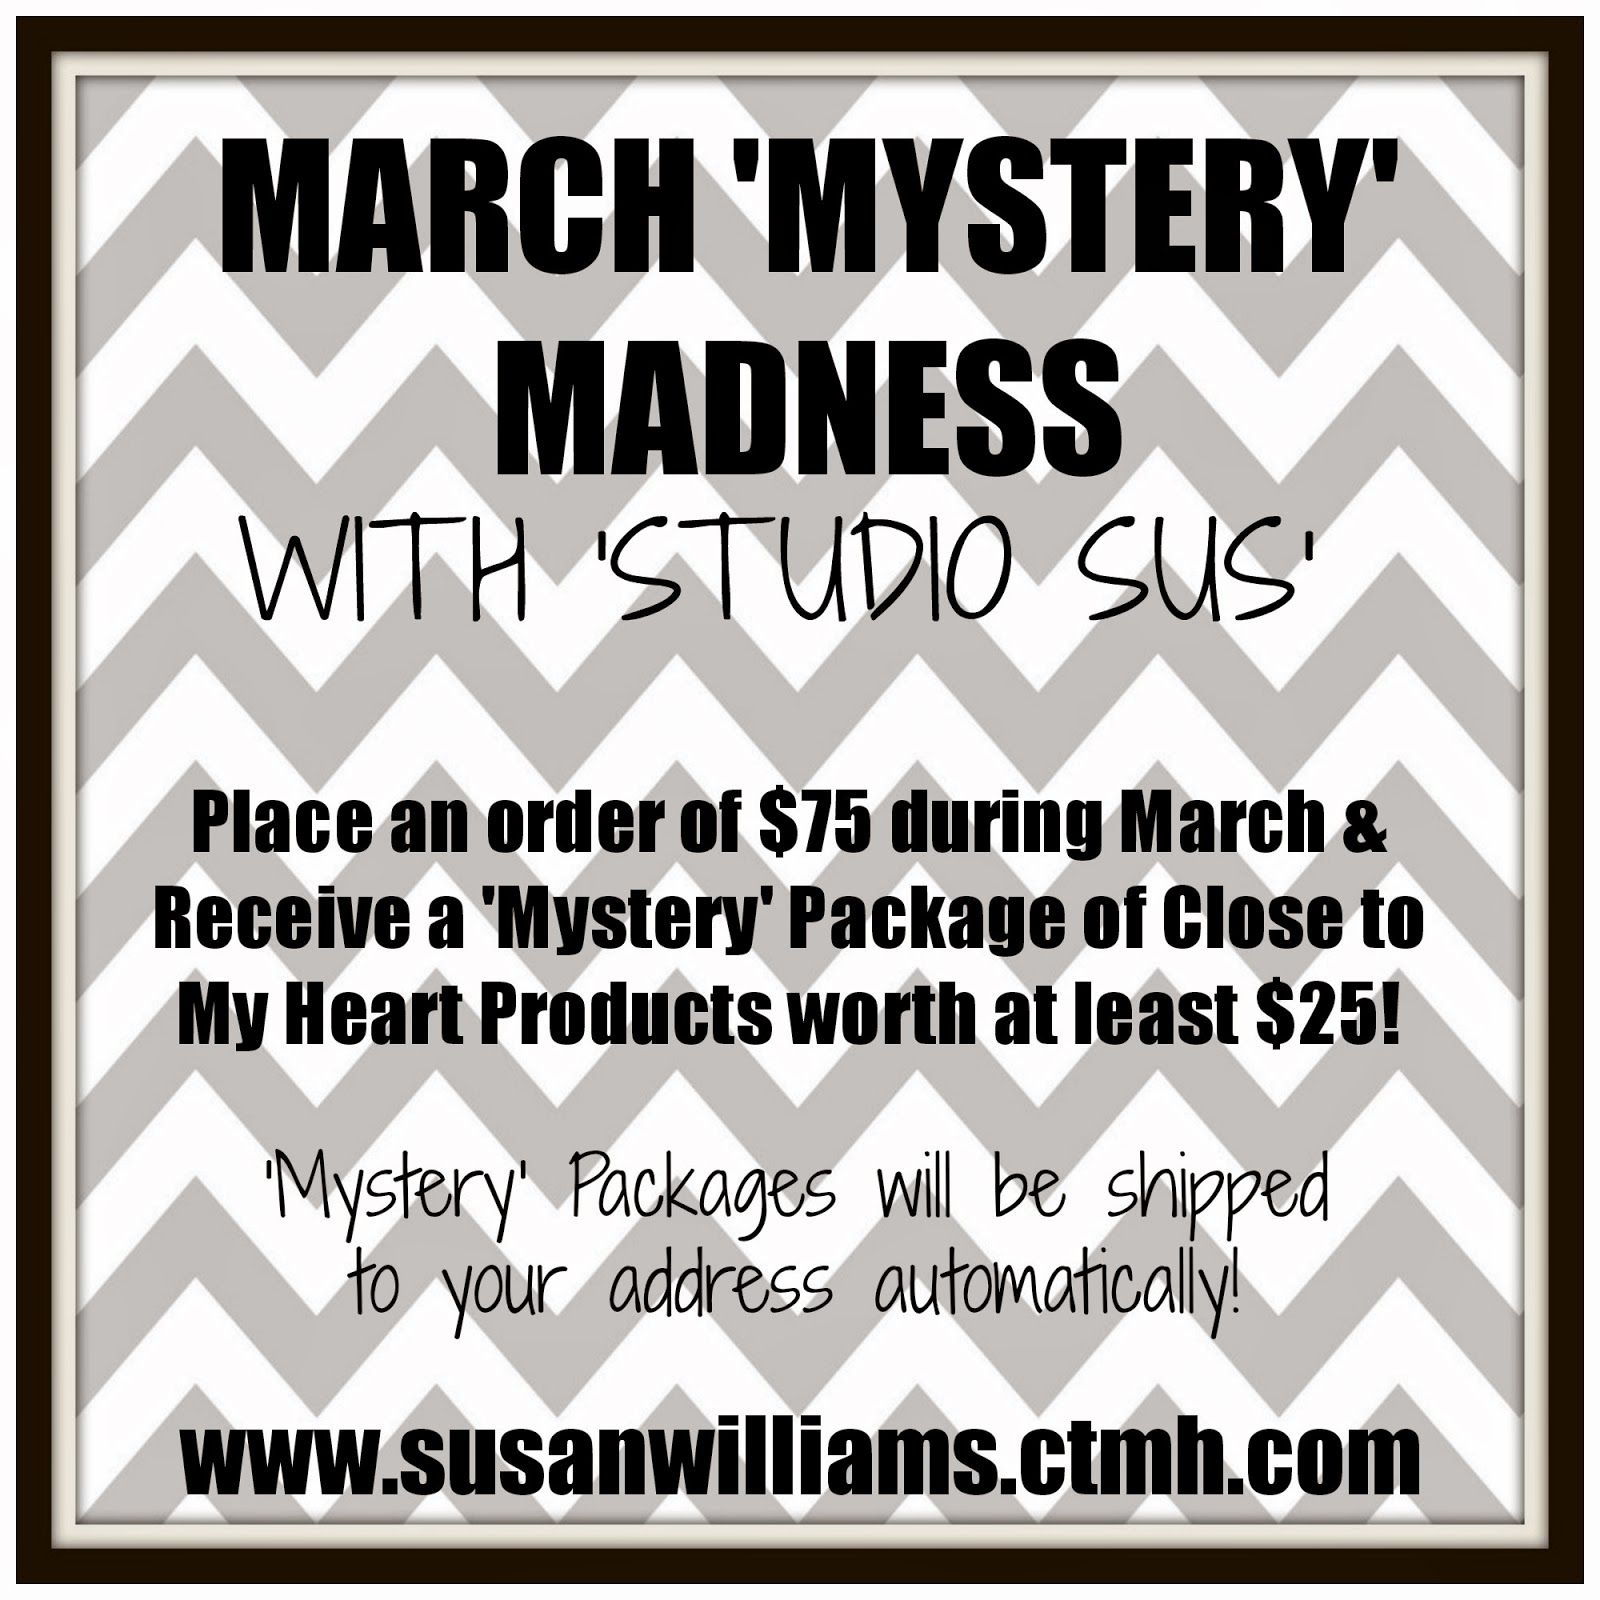 MARCH 'MYSTERY' MADNESS! Order $75 from my website www.susanwilliams.ctmh.com and receive a mystery package of $25 in NEW CTMH Product delivered right to your door!